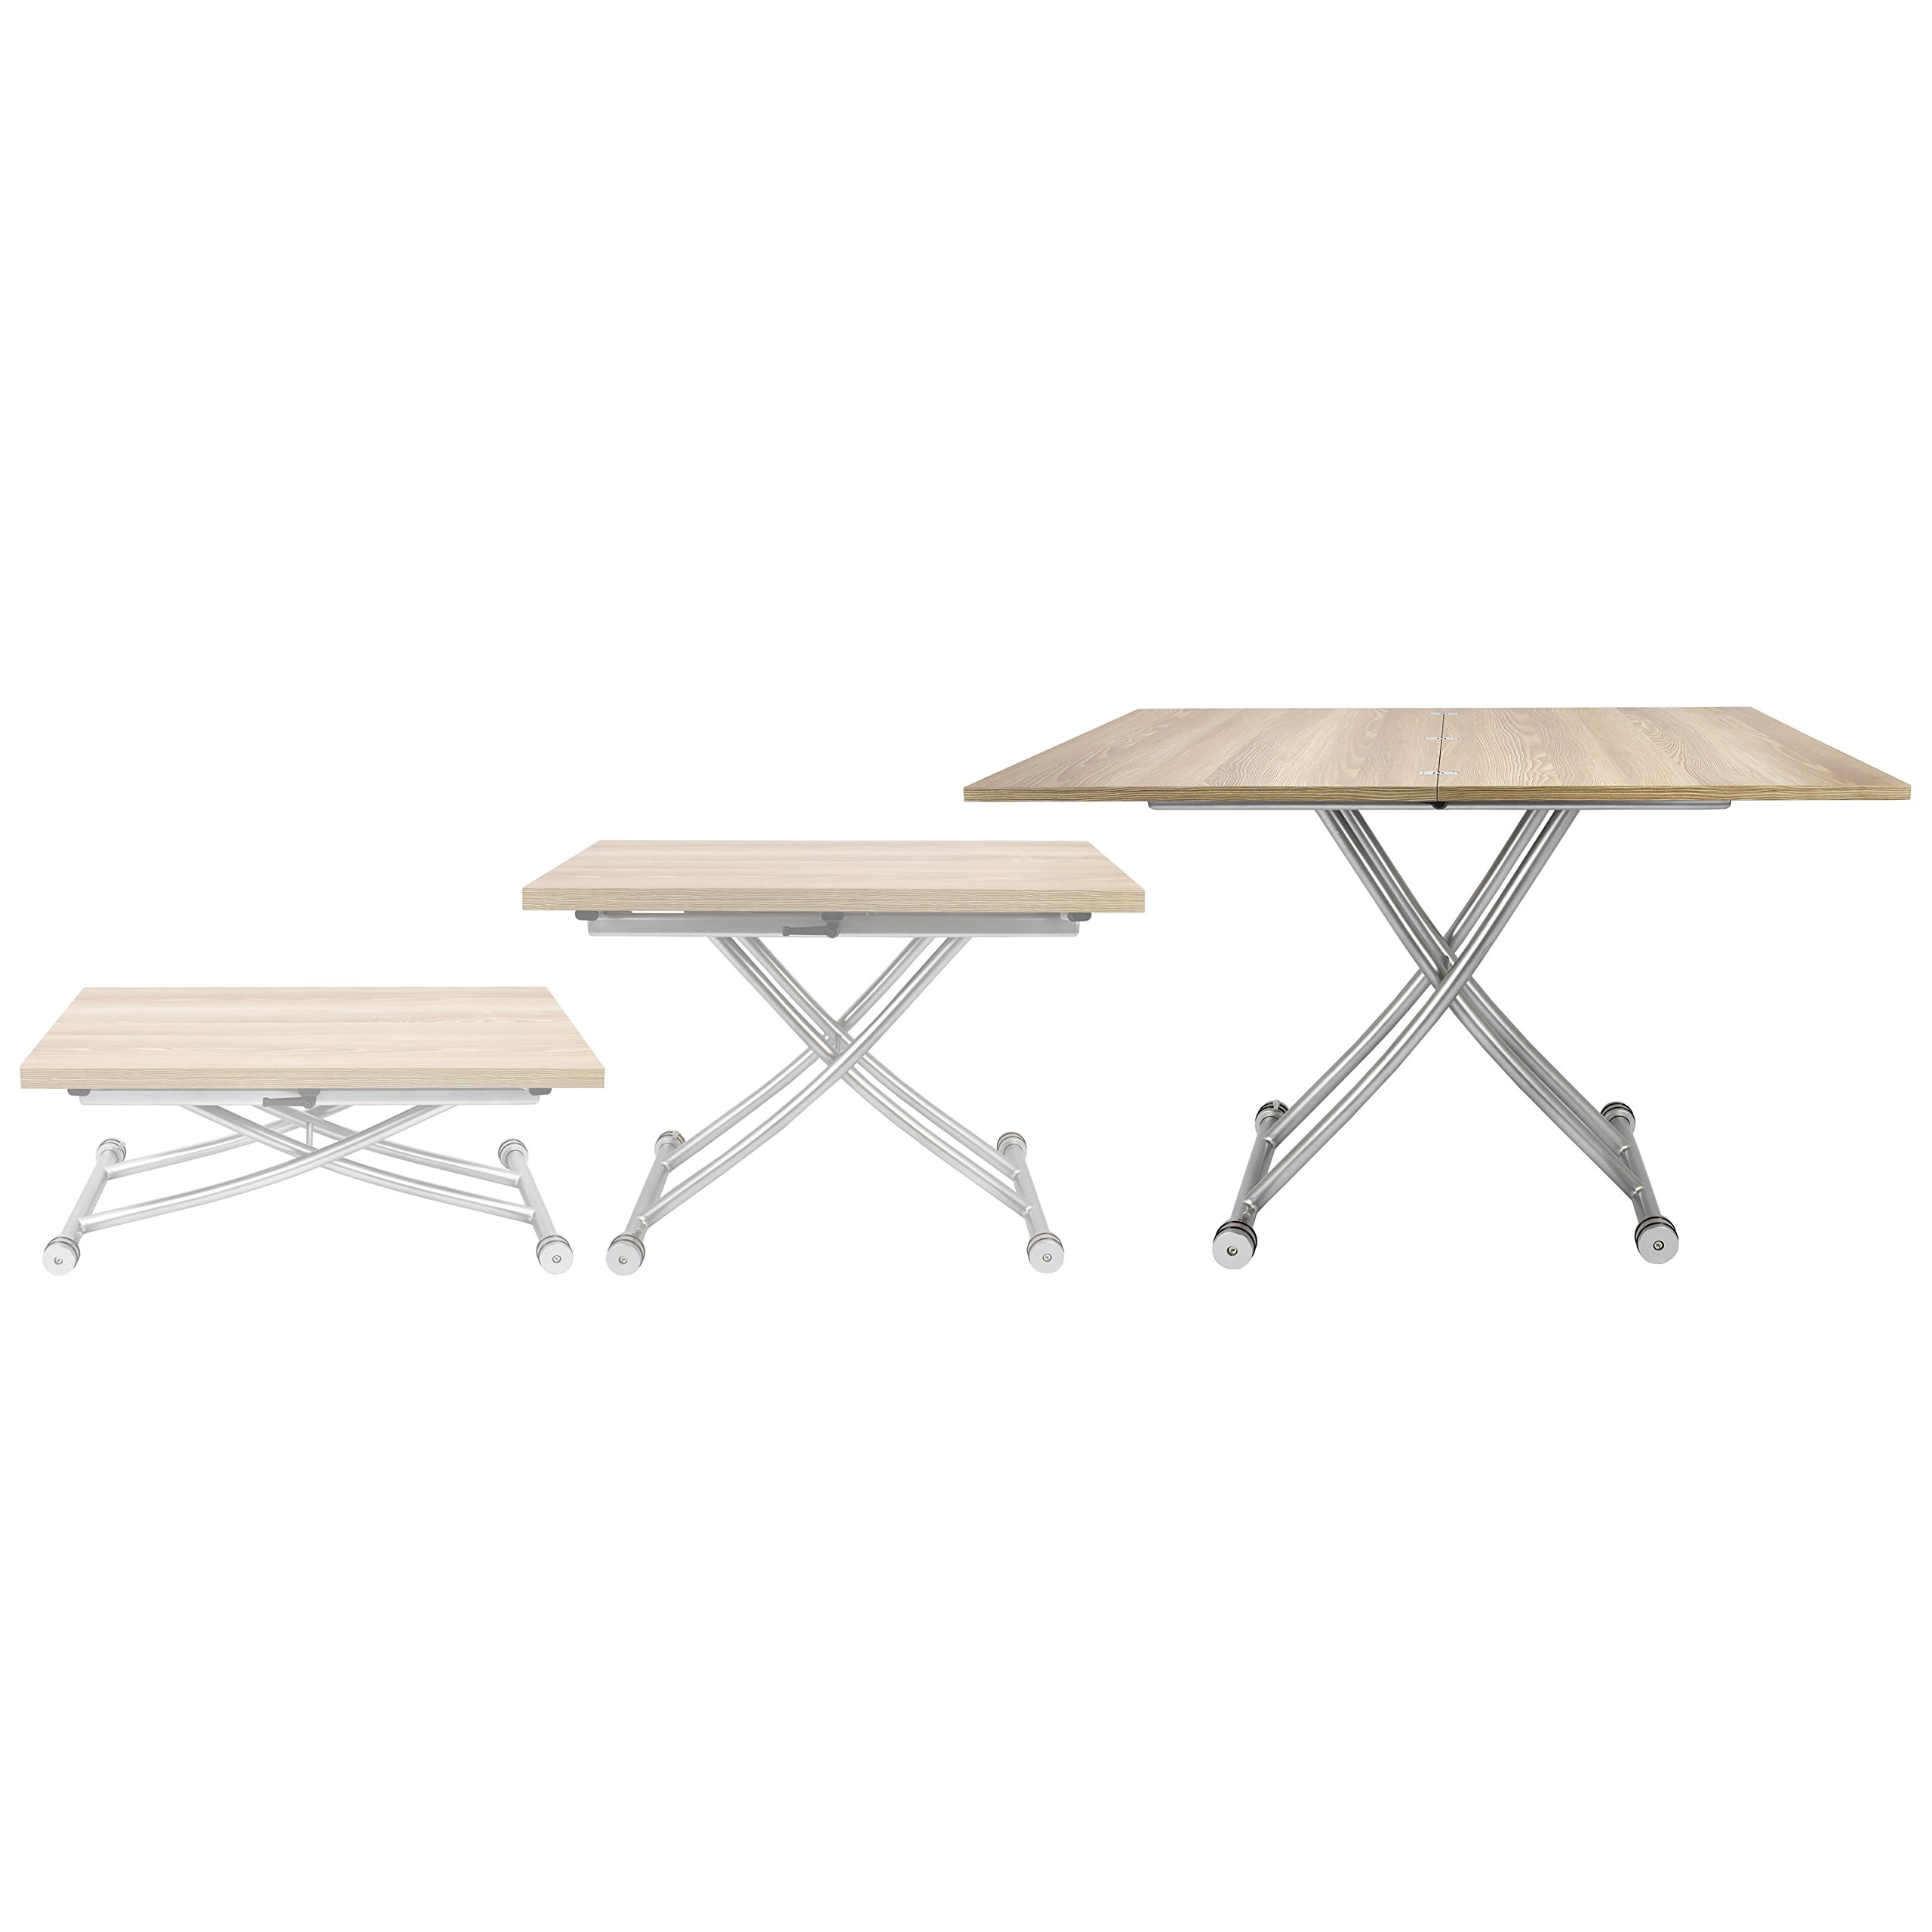 Corner Housewares Transforming X Coffee and Dining Table in Light Wood